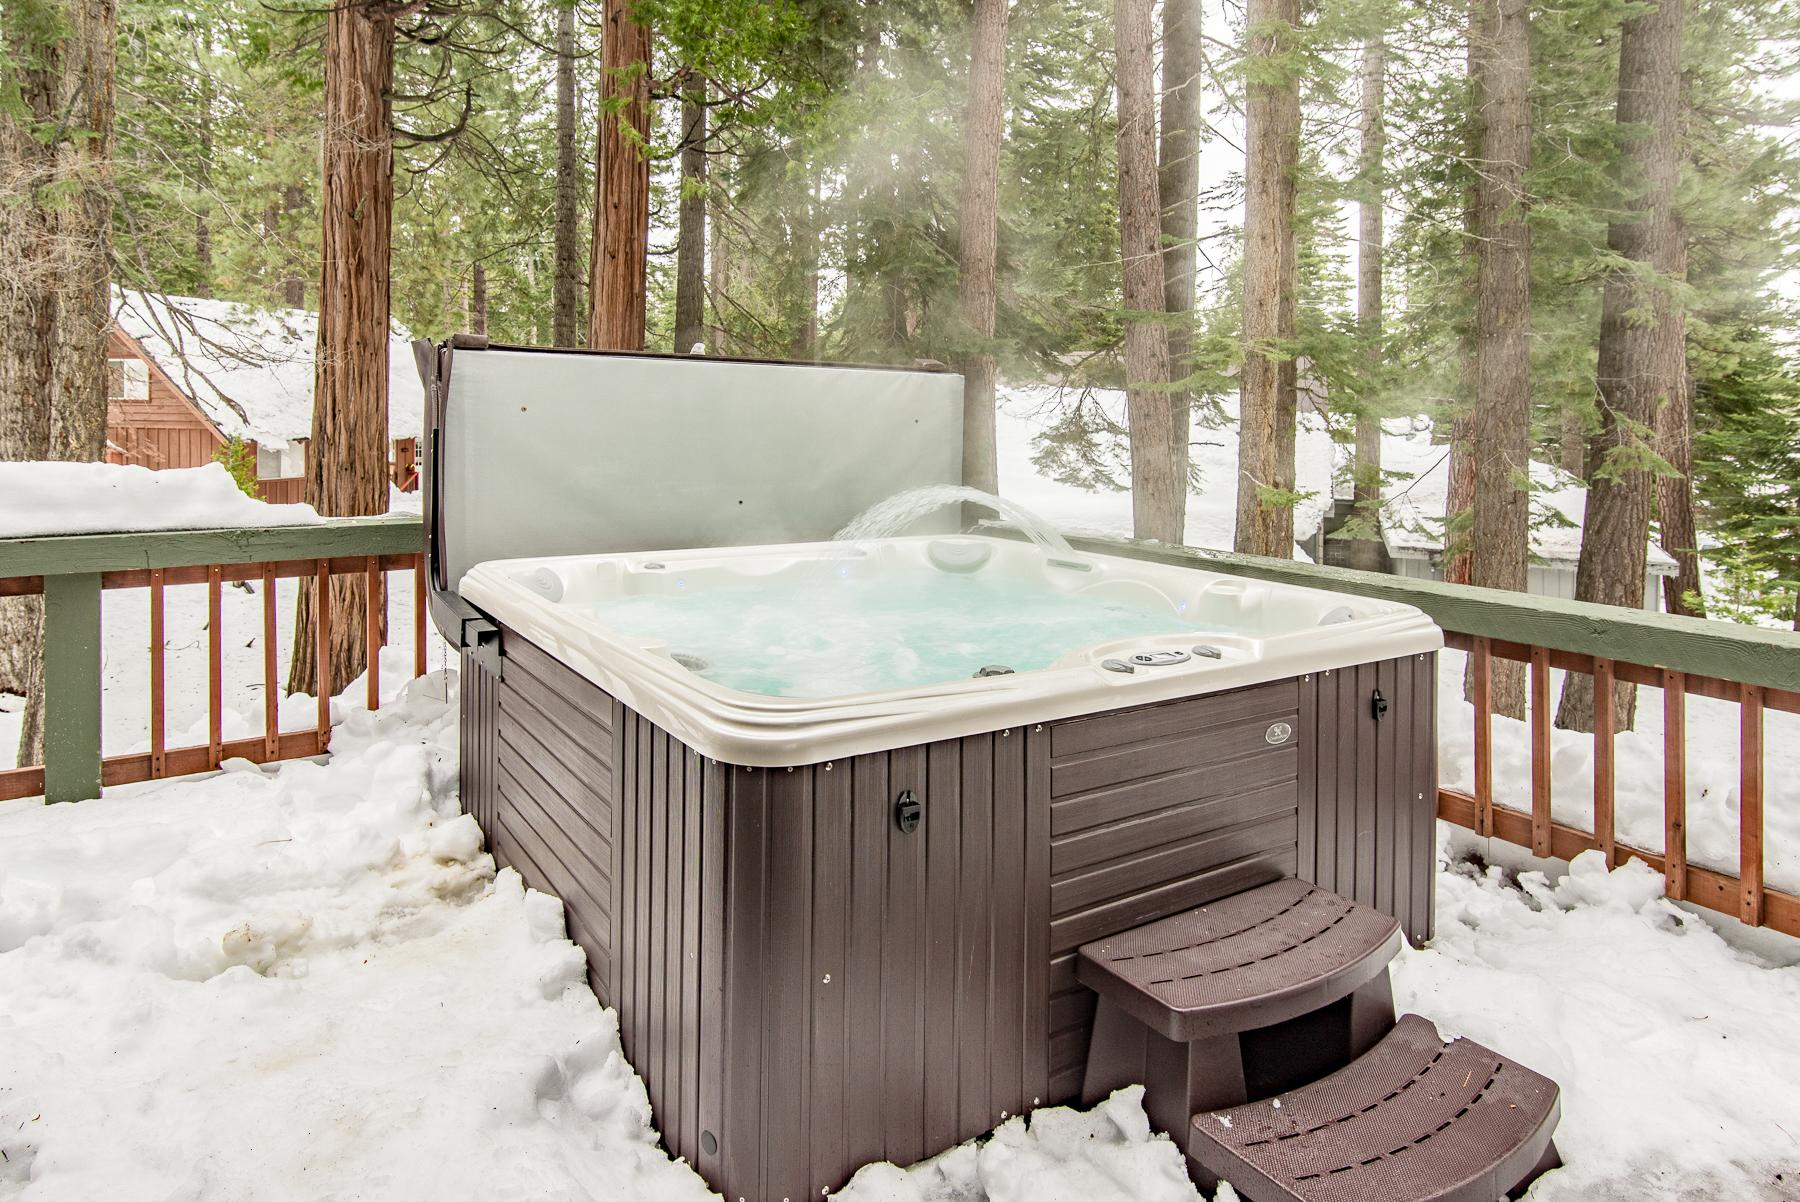 Take a soak in the private hot tub.